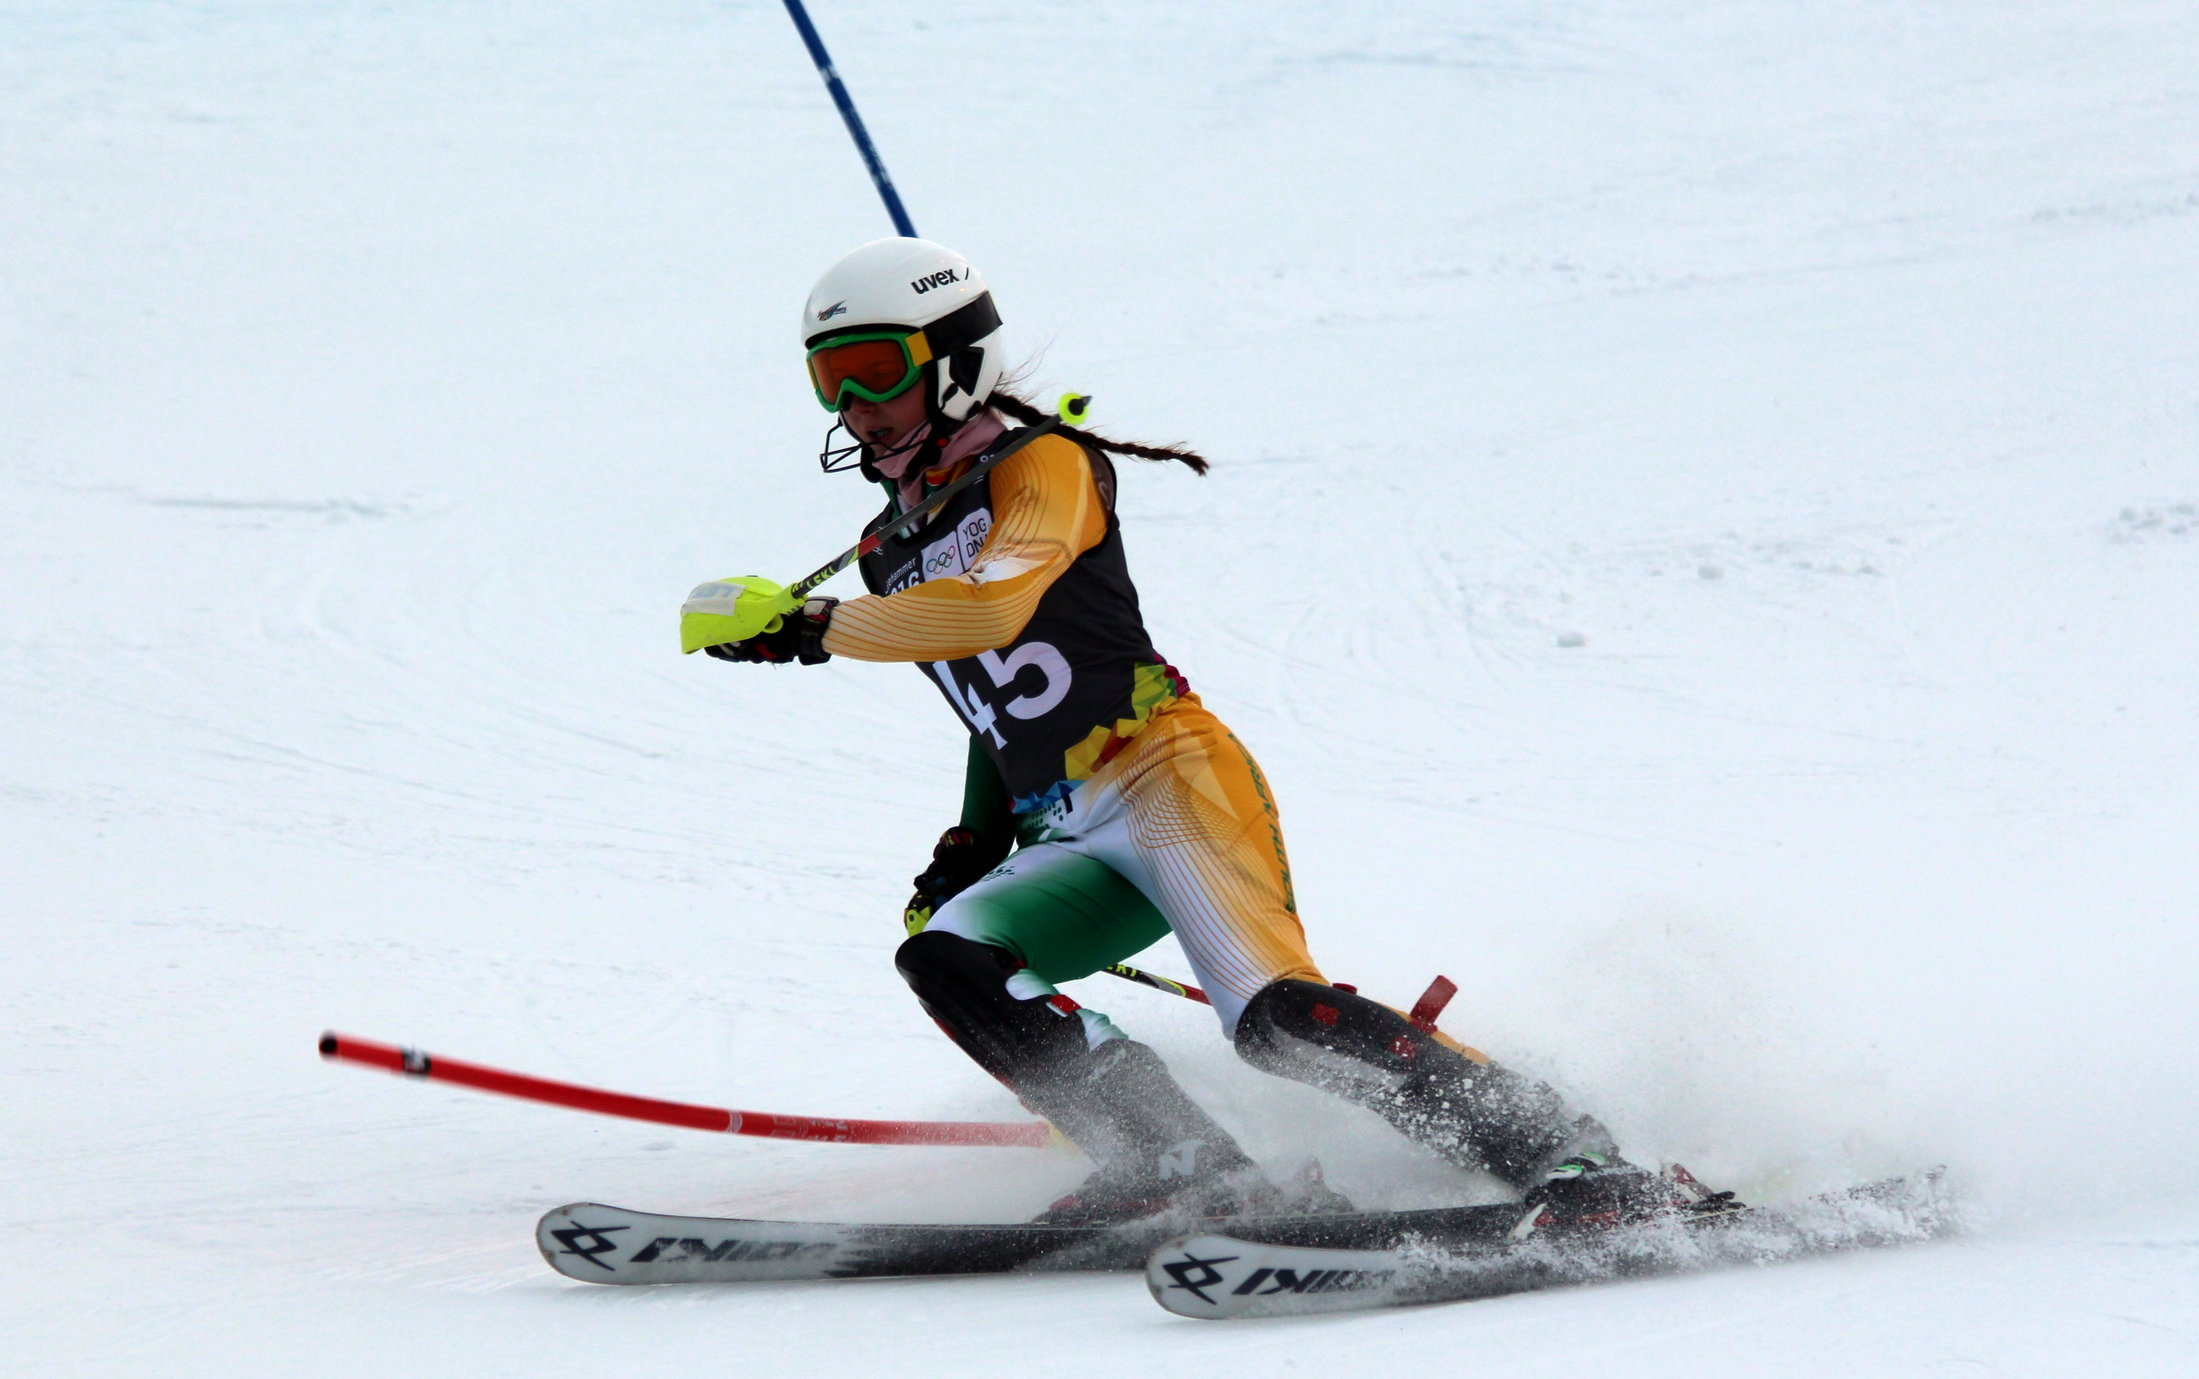 Olivier wraps up her Games with 31st spot in the slalom